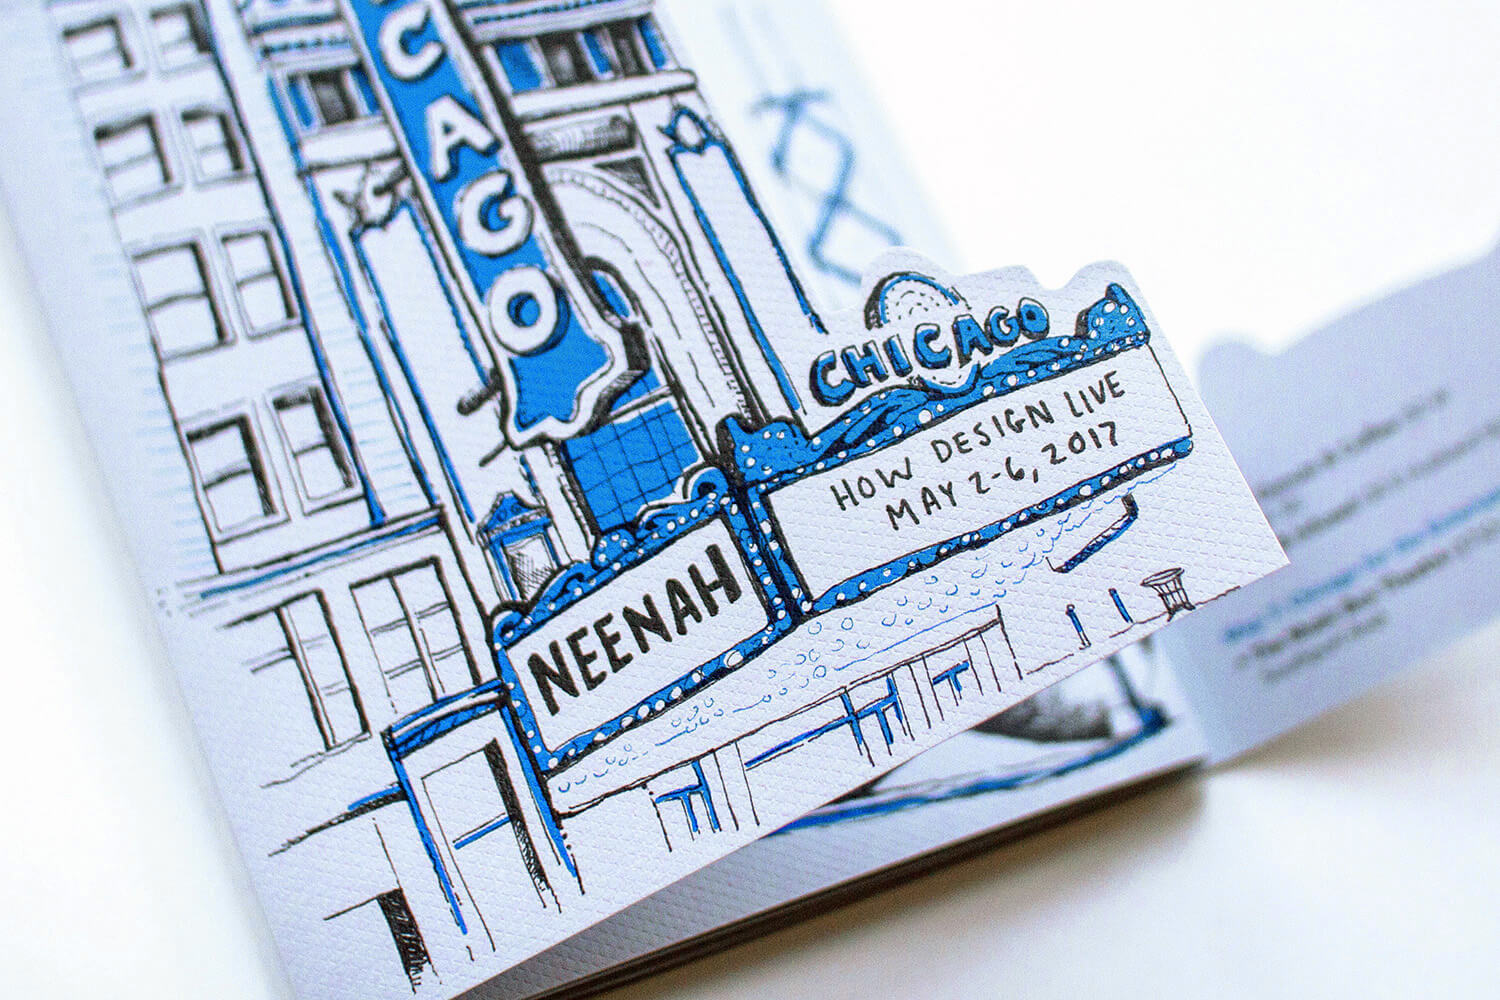 neenah-chicago-diecut-cover-opening.jpeg